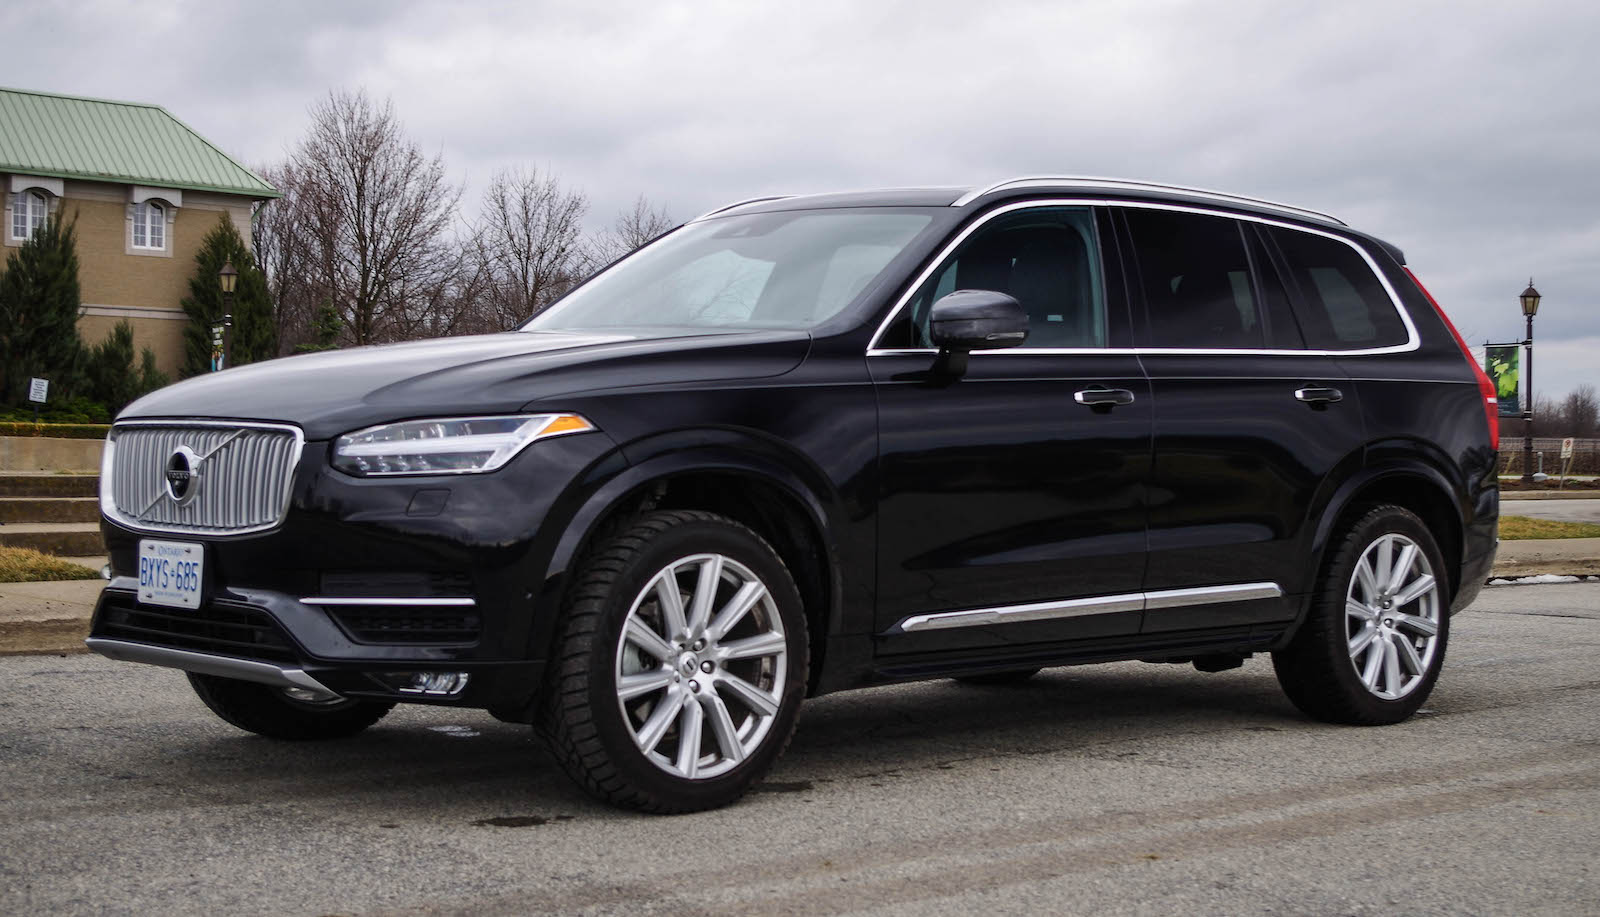 Tech Review: 2016 Volvo XC90 | Canadian Auto Review